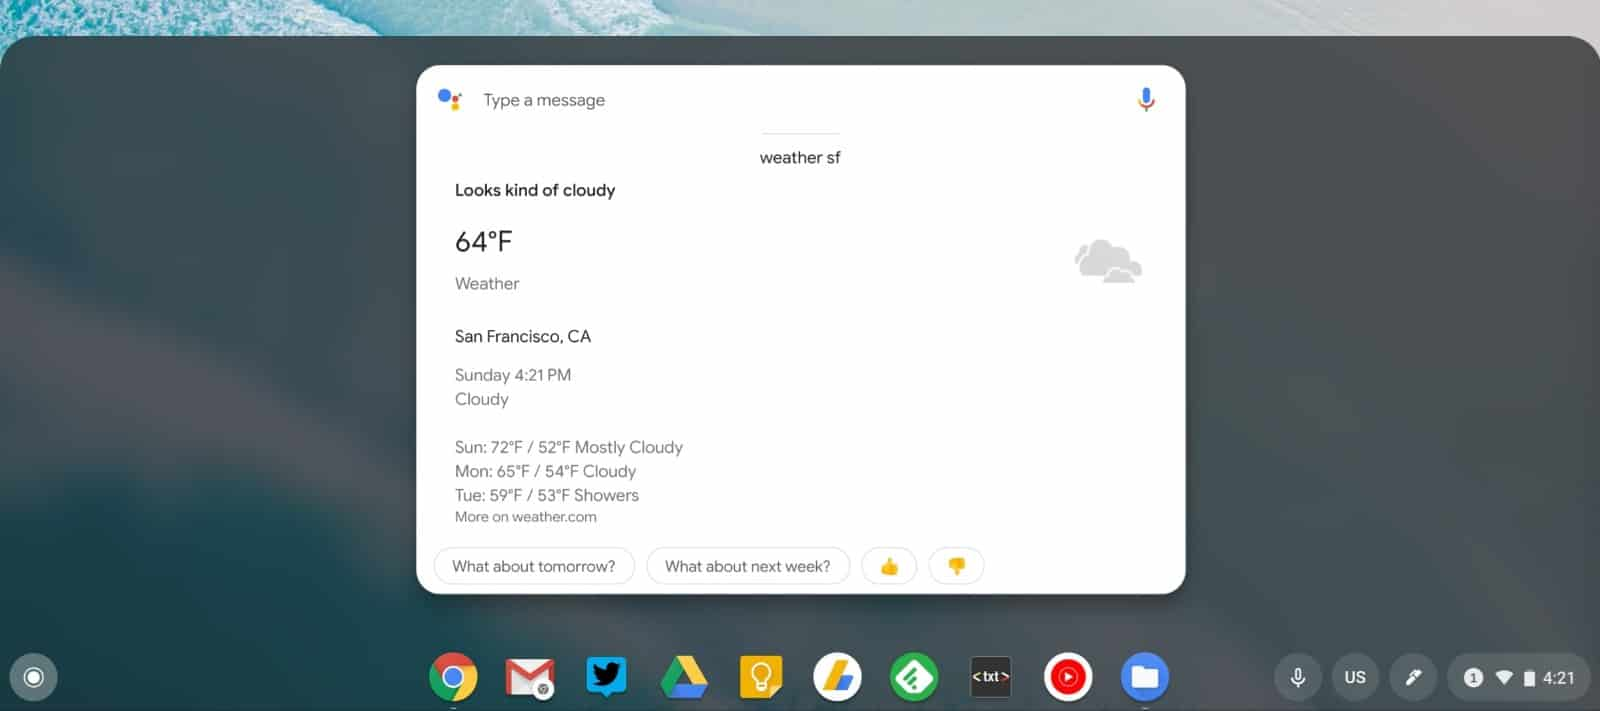 05 chrome os 74 search 1 from 9to5Google